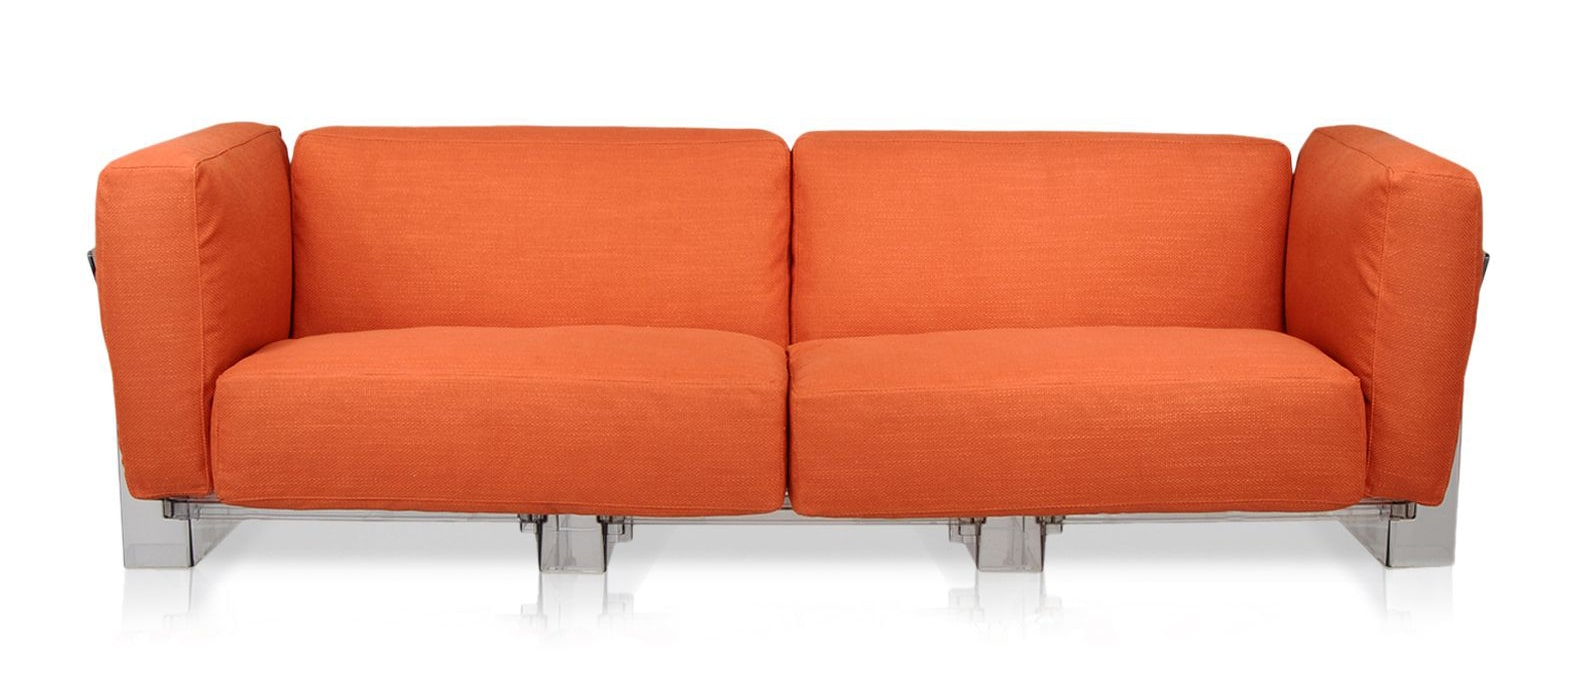 Canapea Pop Duo | KARTELL